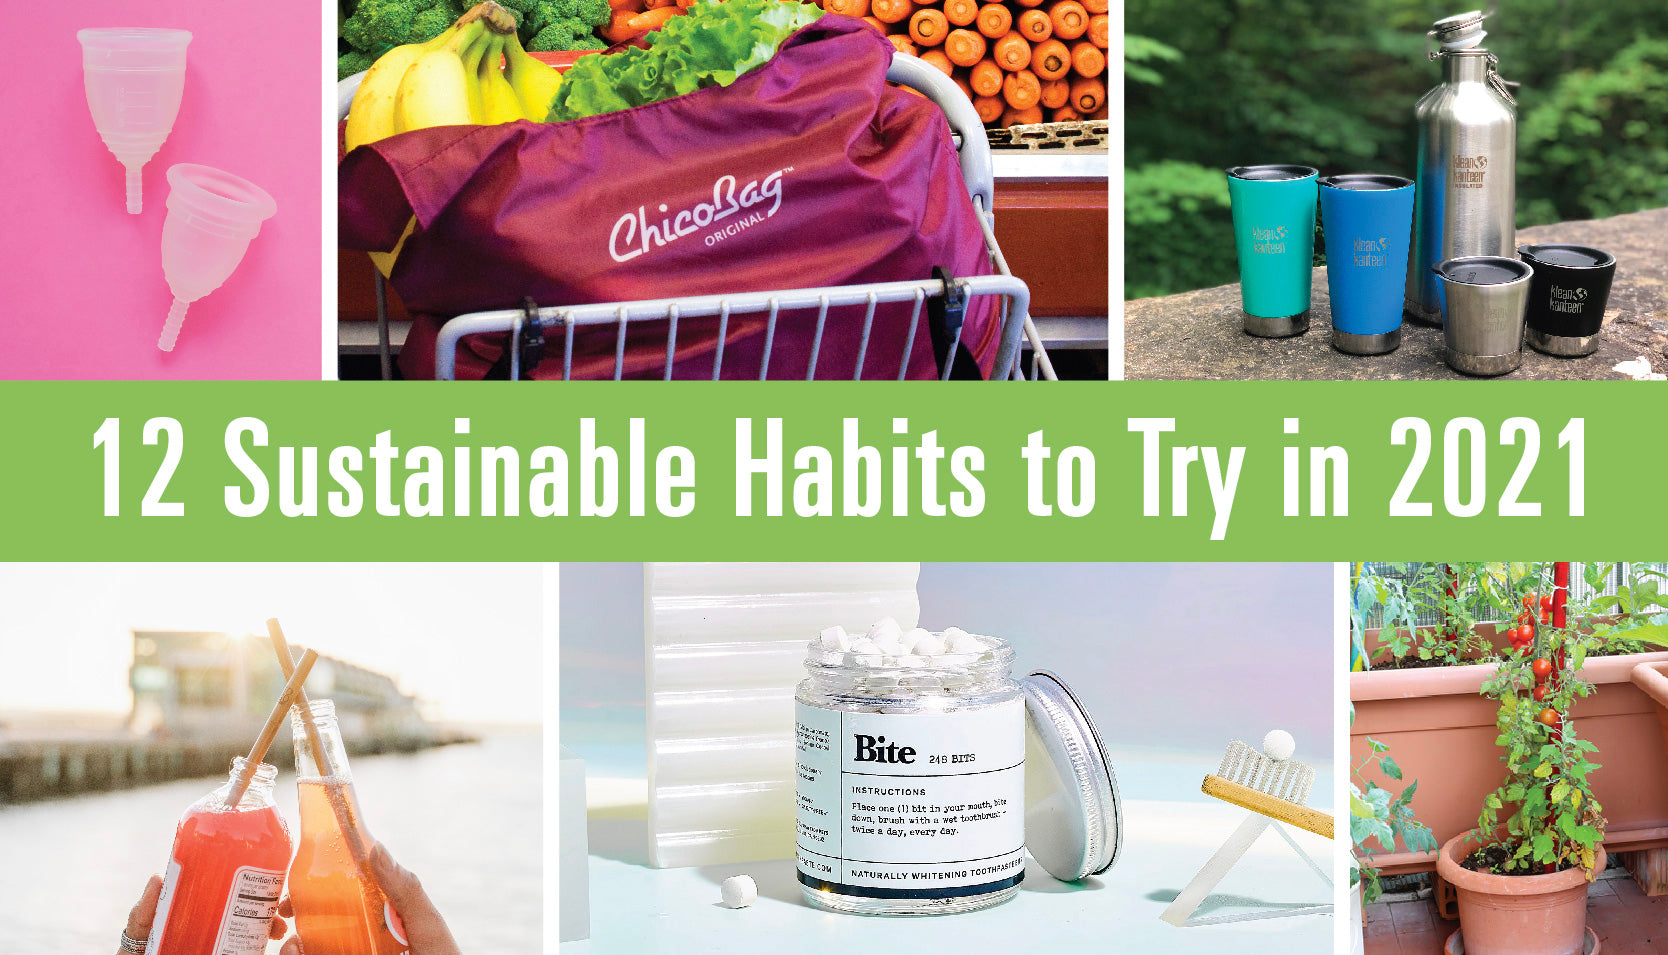 12 Sustainable Habits to Try in 2021